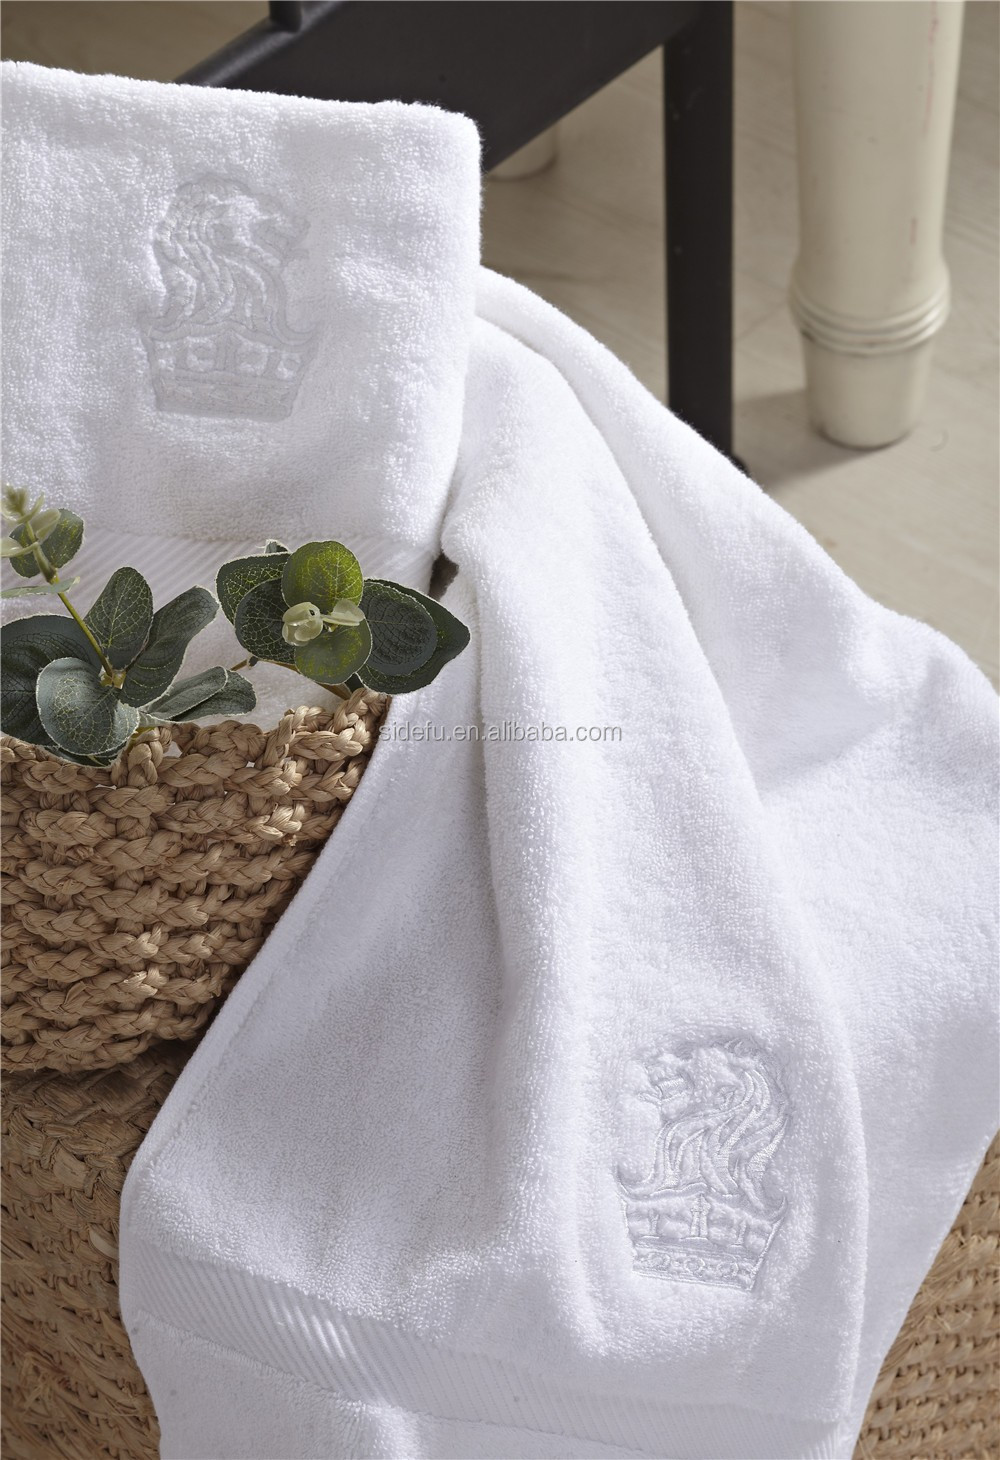 Customized Hotel supplies white jacquard cotton hotel white bath towel